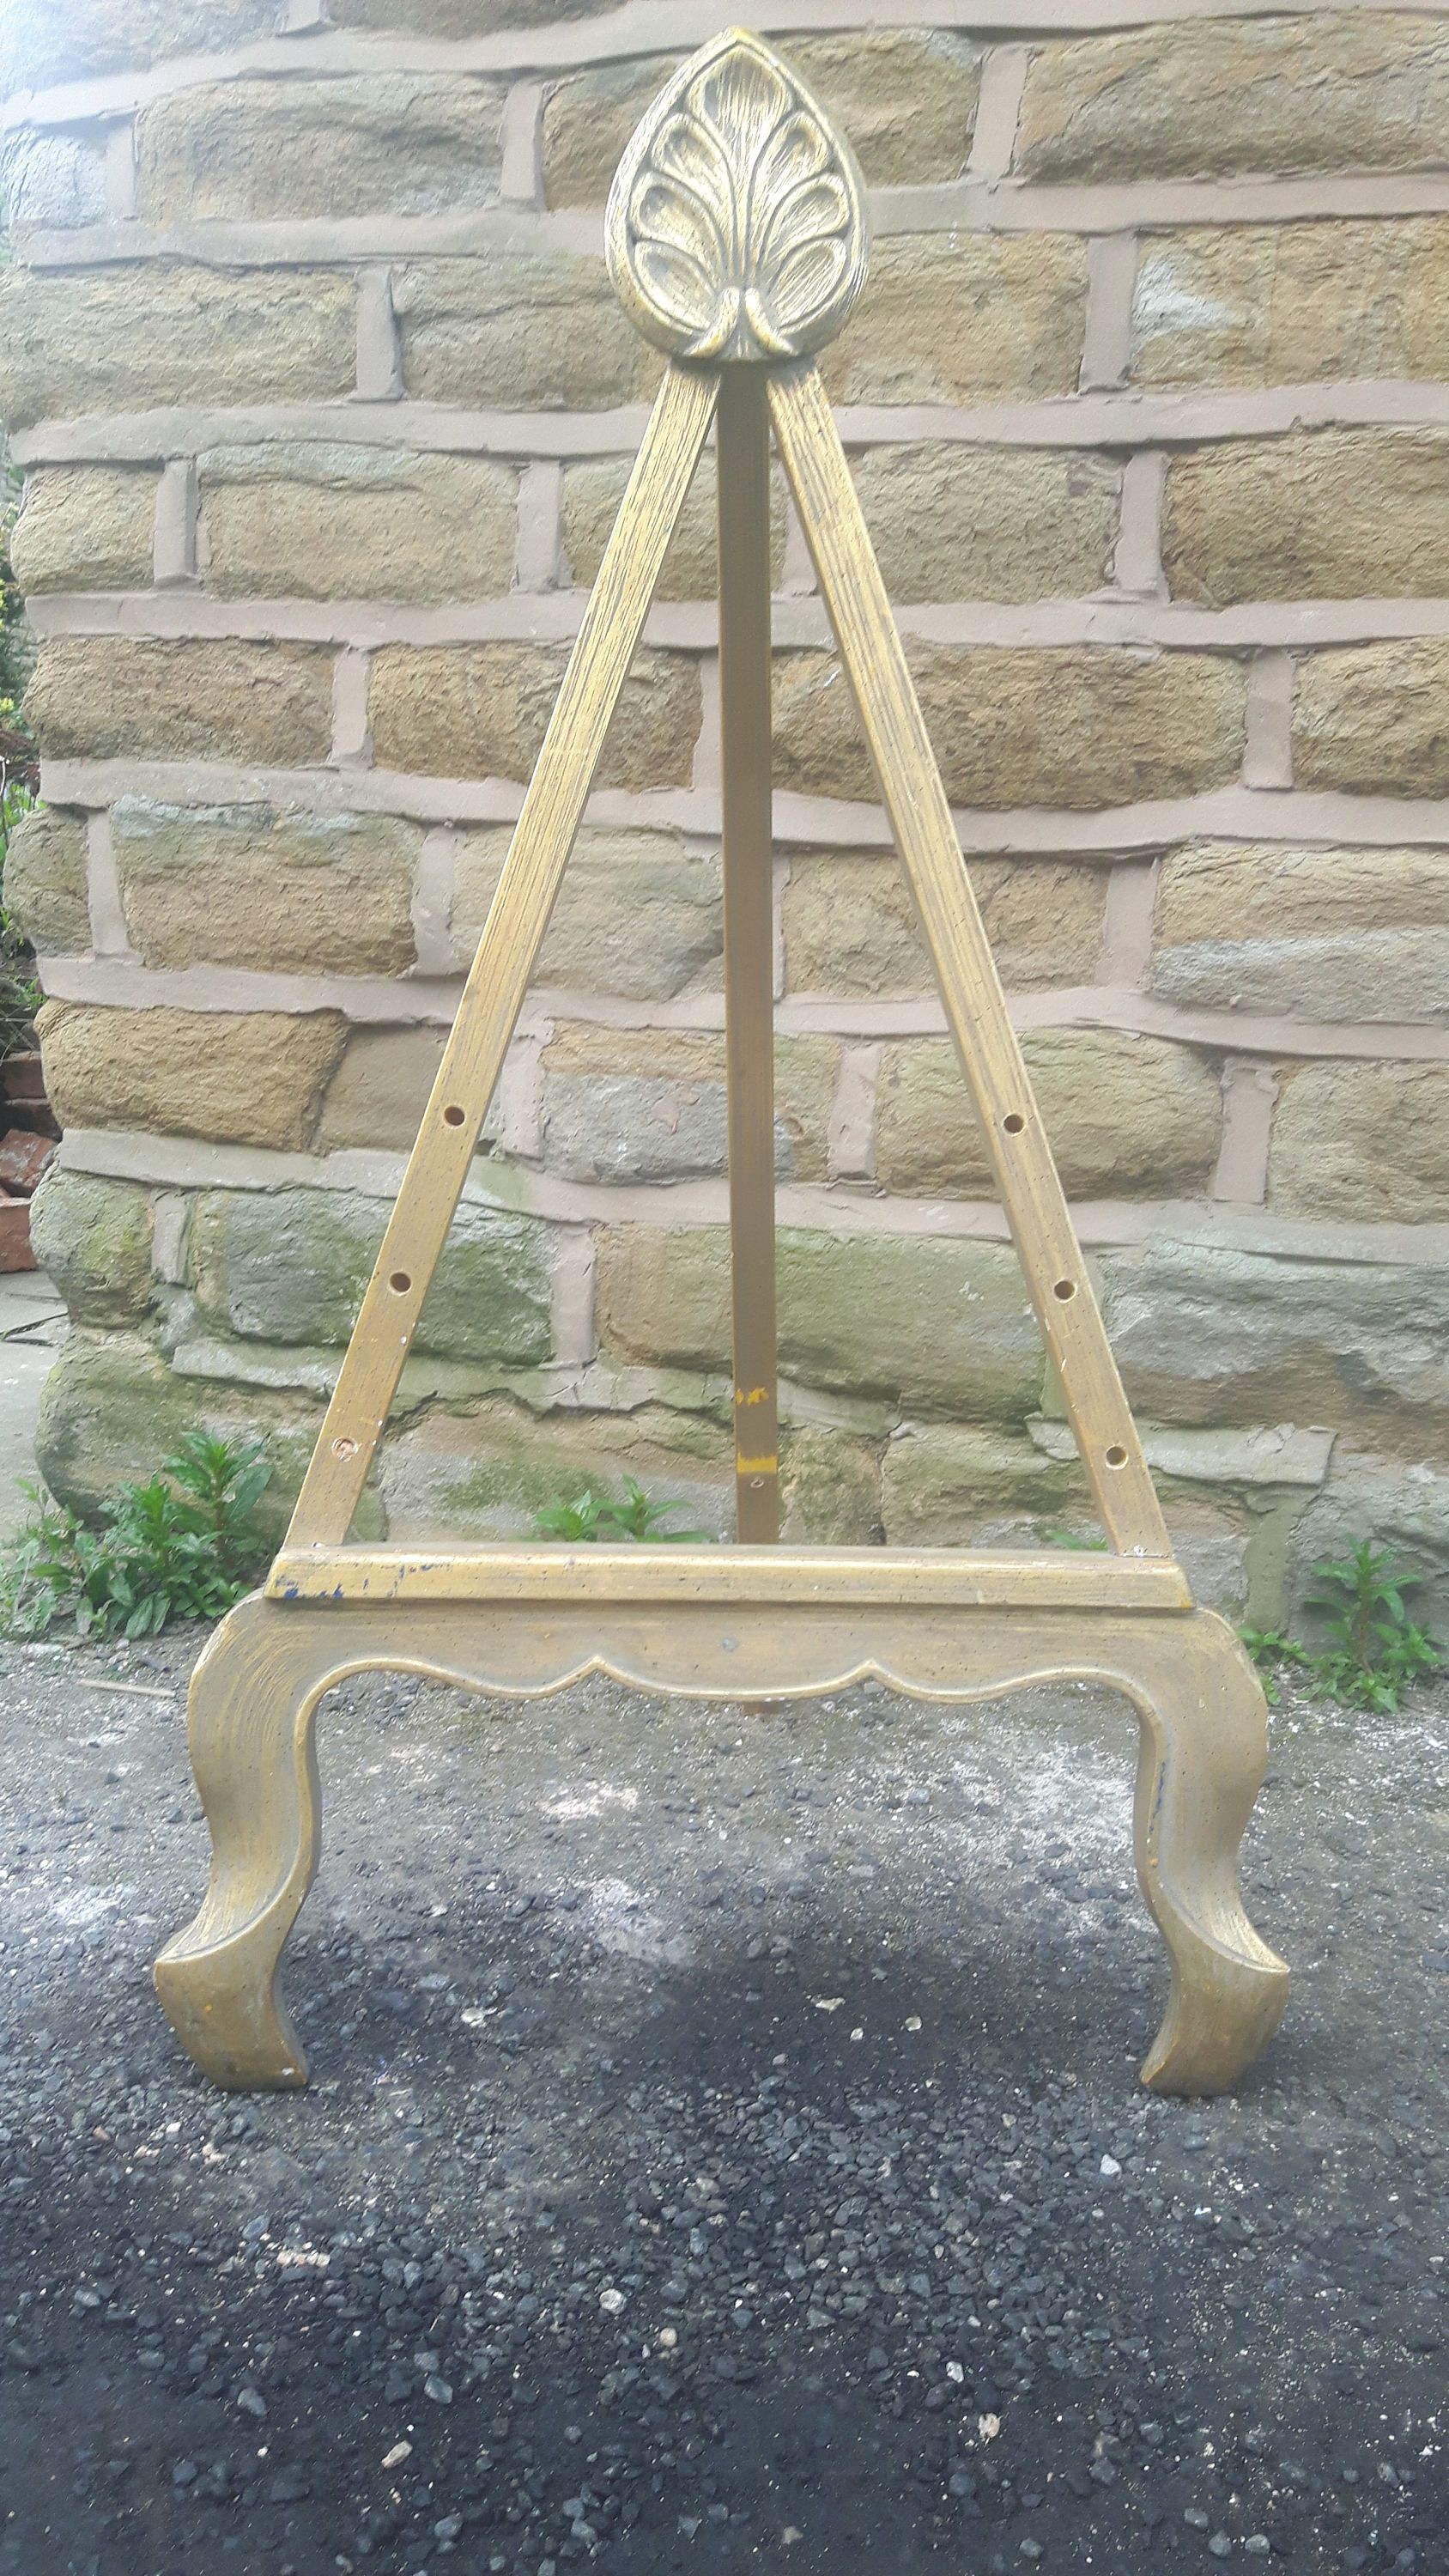 Widescreen diy wedding easel of androids full hd pics antique vintage artists picture display stand gilt gilded gold